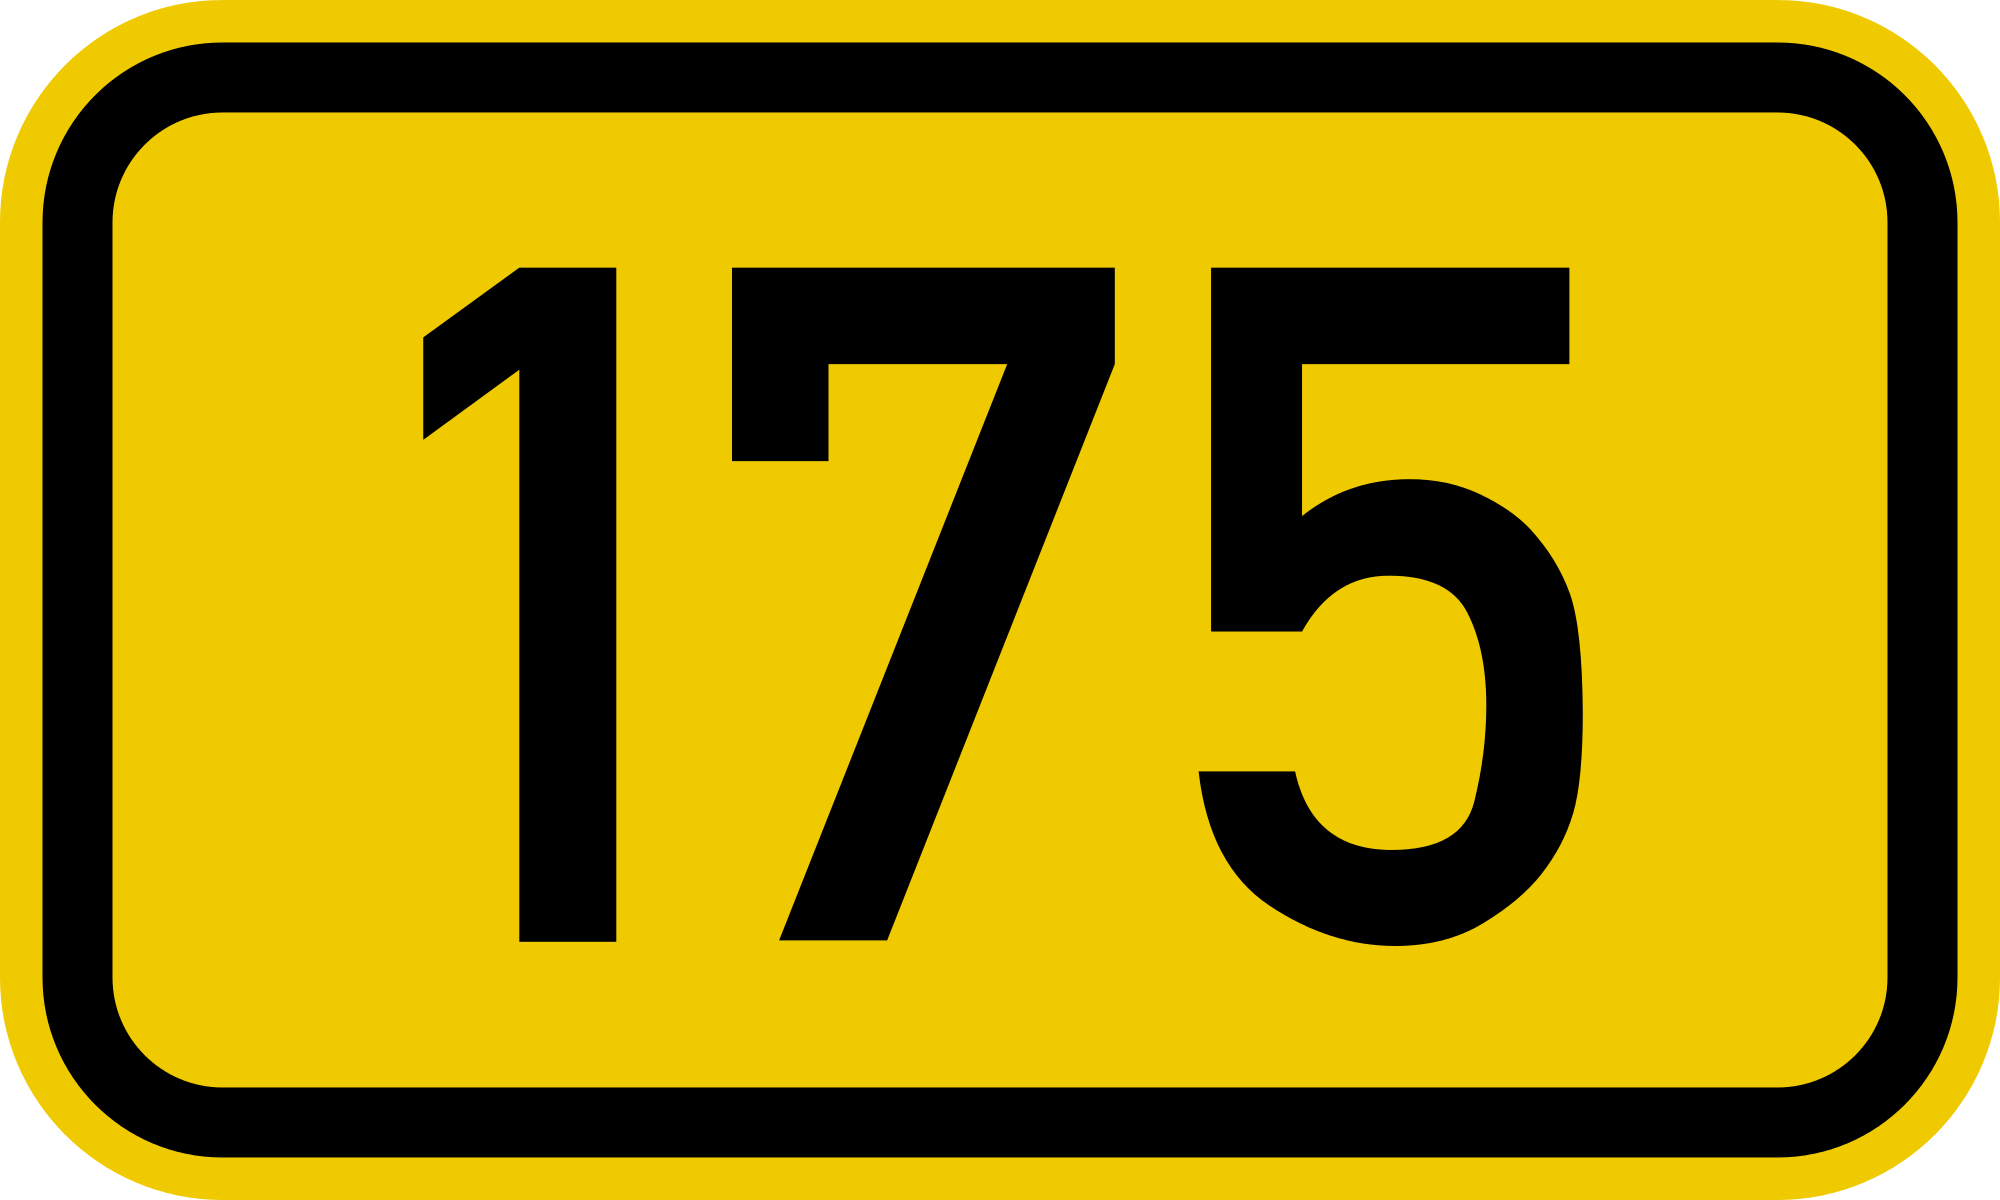 Sign that reads 175